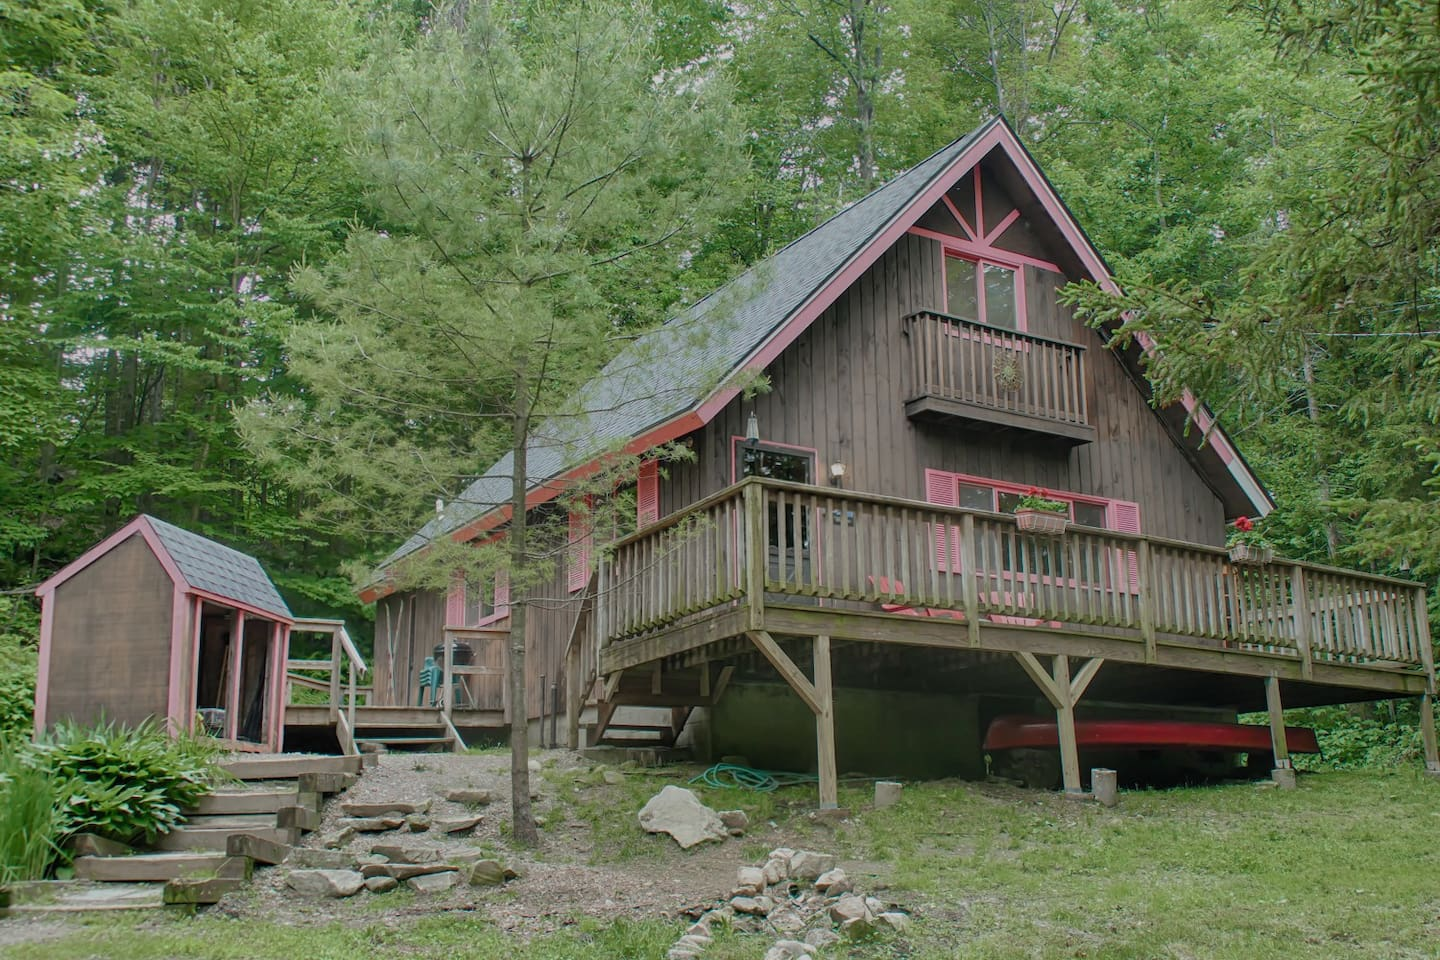 The Happy Moose Chalet